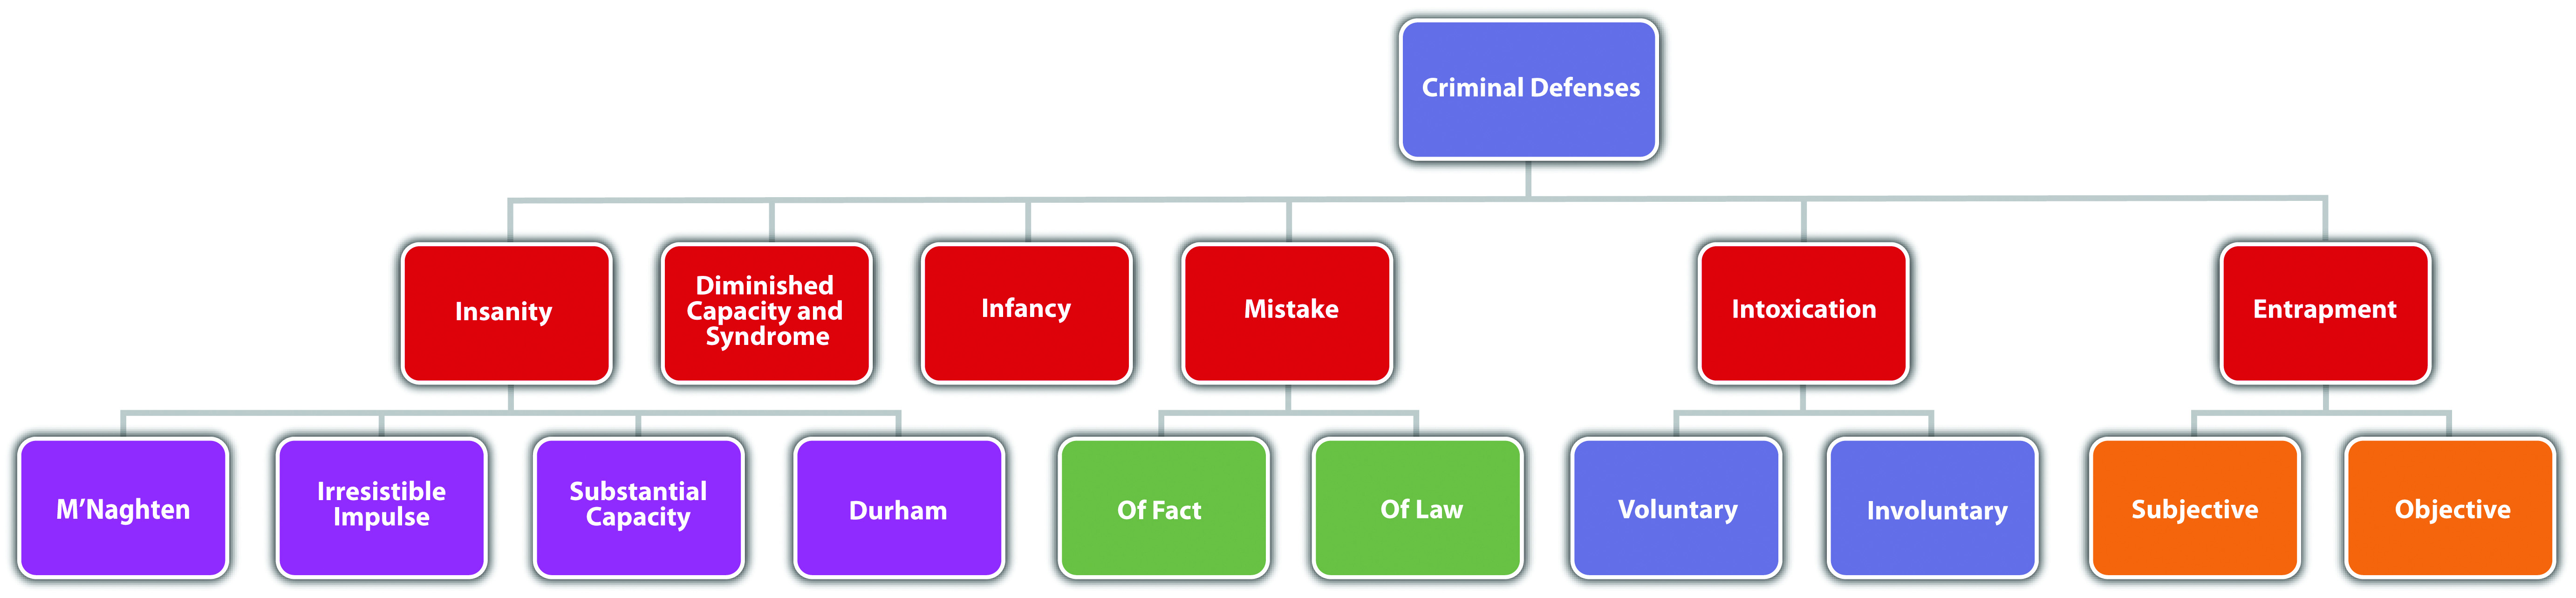 insanity defense part insanity plea reasonable and The specific guidelines to qualify for the offense limit the number of times the insanity defense is used and successfully plead in cases, contrary to public perception: the insanity defense is used in fewer than 1 percent of all cases, and only about a quarter of those cases are successful.